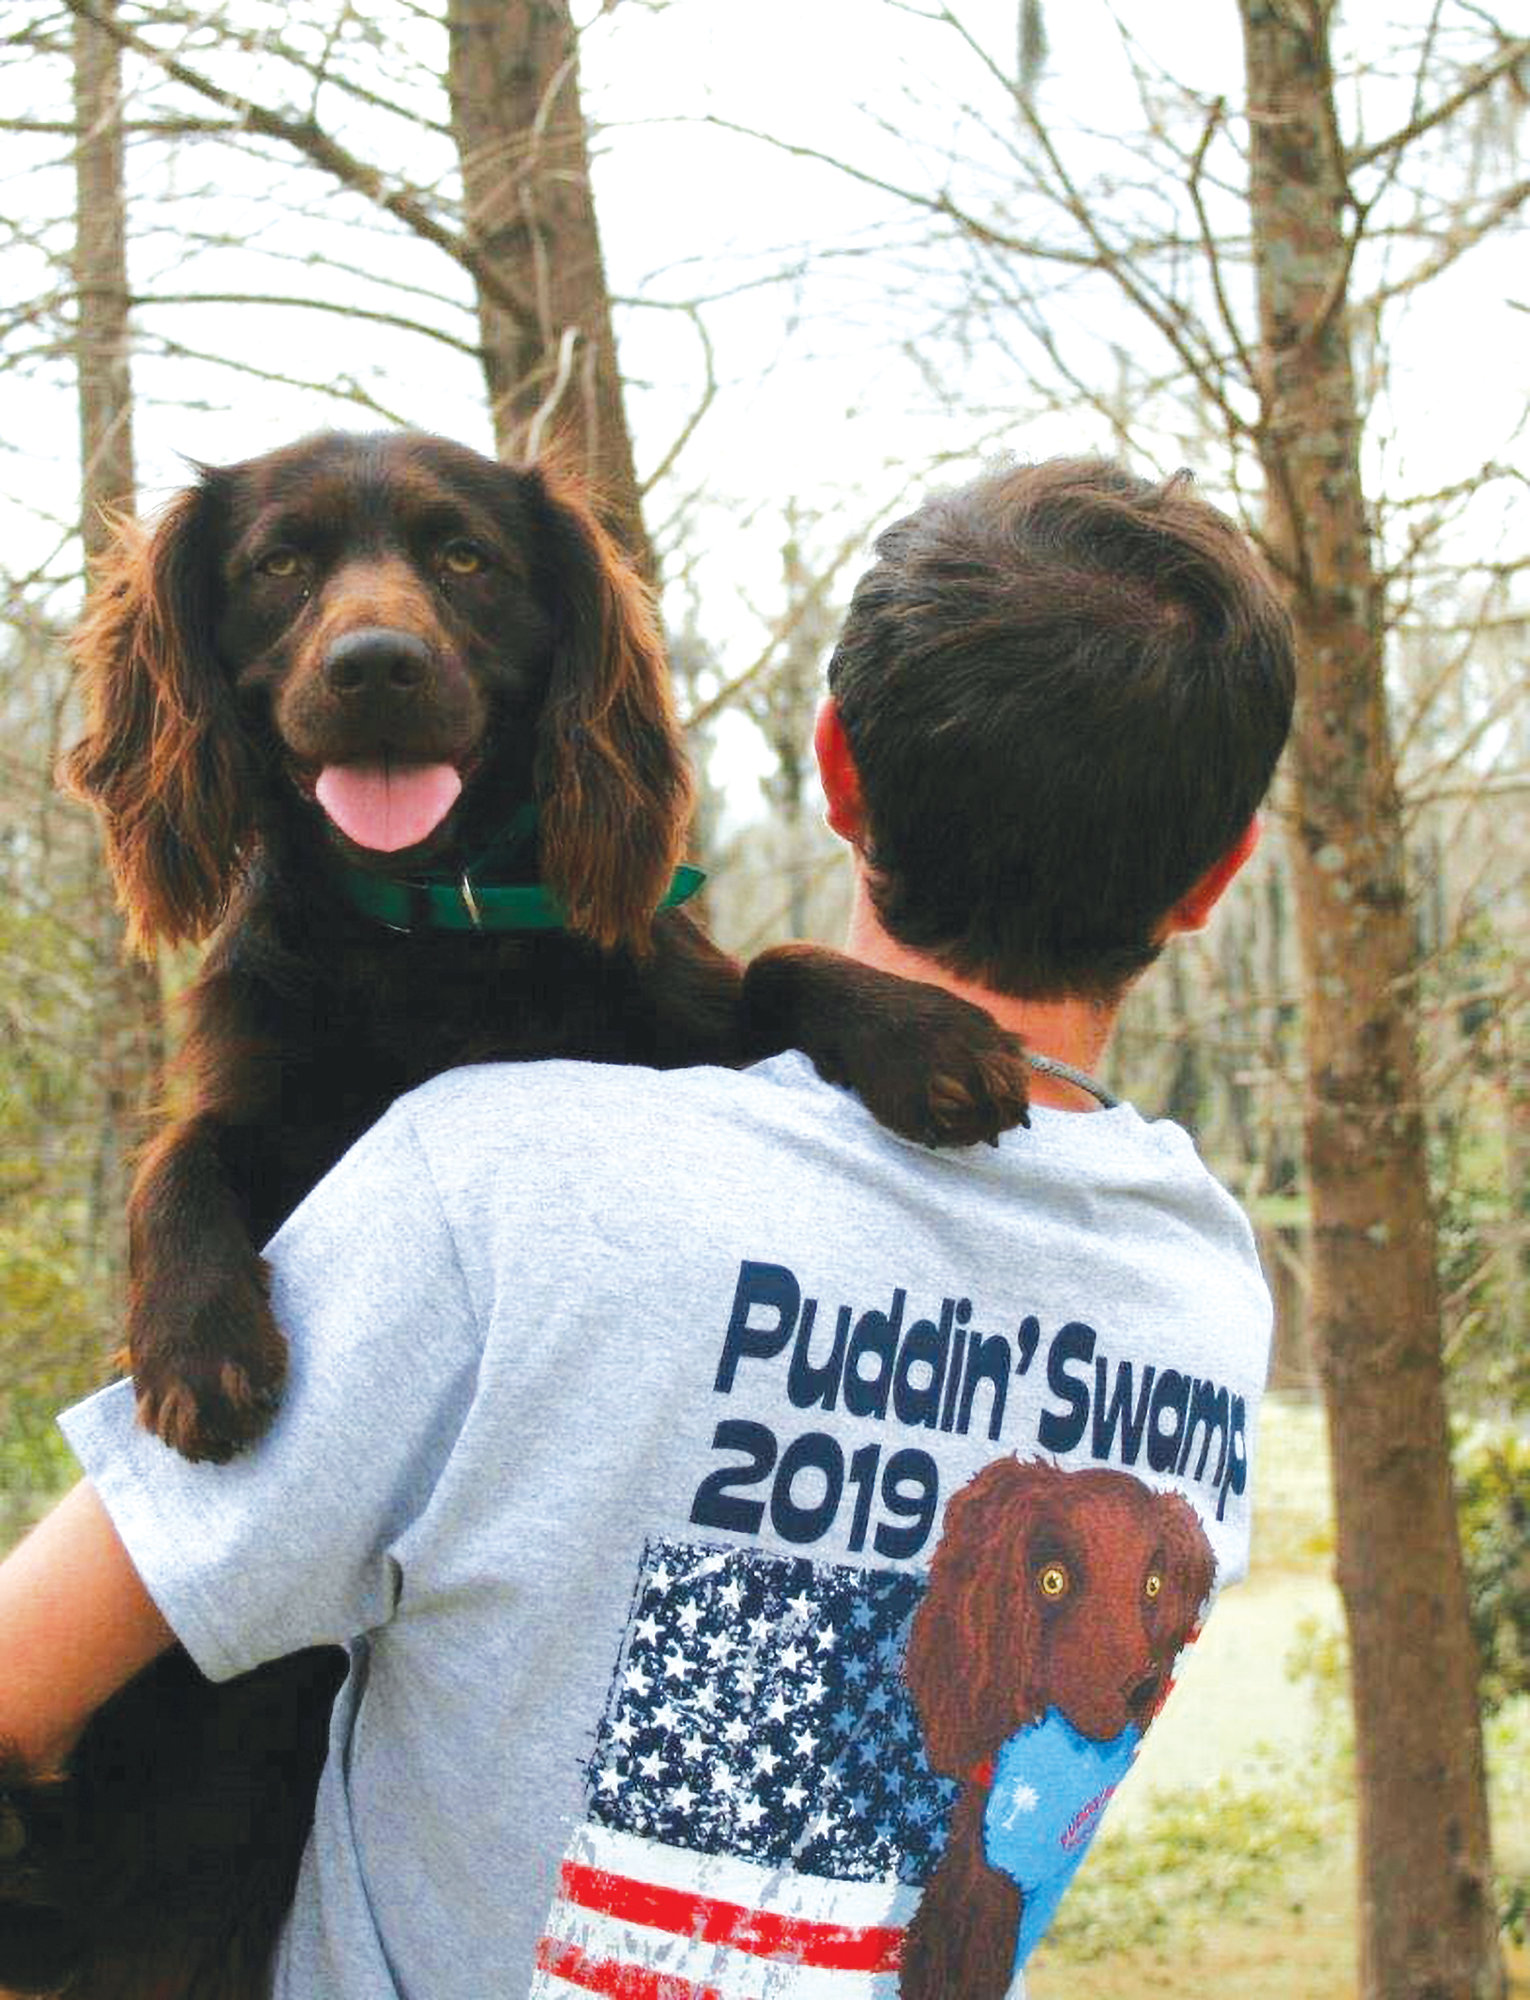 The official Puddin' Swamp Festival T-shirt this year features Beau holding a festival hat.    PHOTO PROVIDED